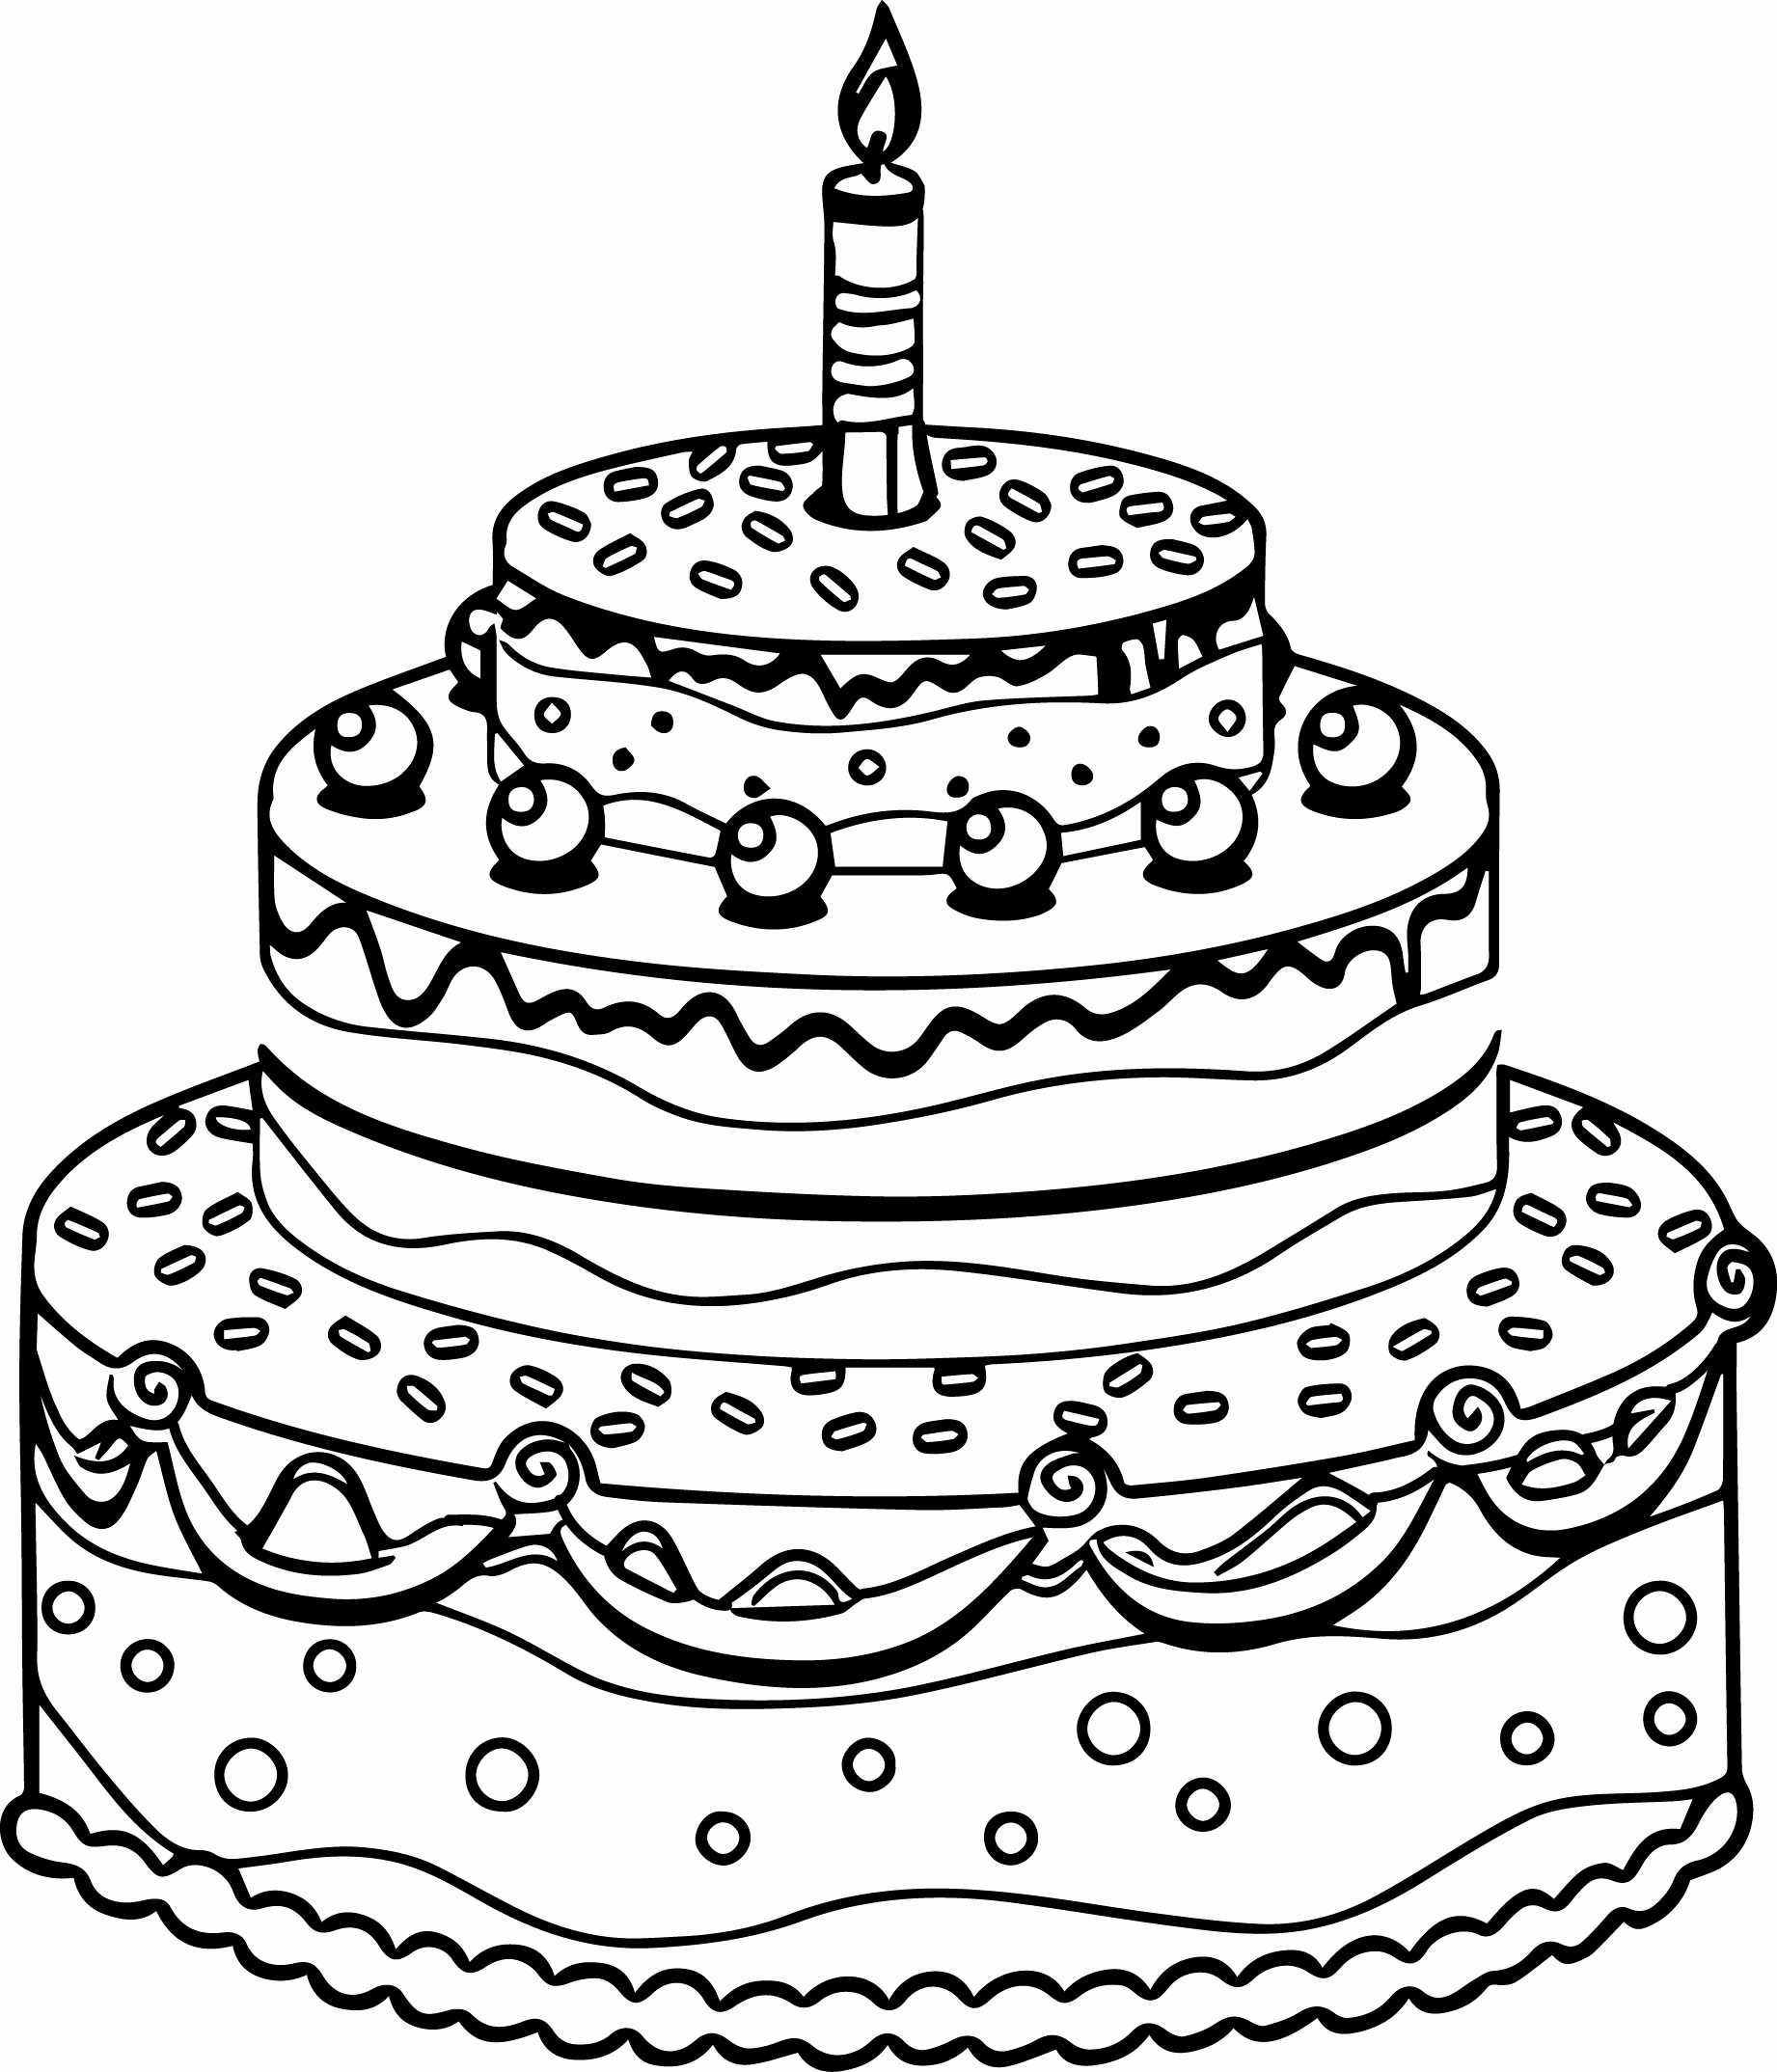 coloring pages for birthday cakes ; 1st-birthday-coloring-pages-unique-birthday-cake-coloring-page-03-a-of-1st-birthday-coloring-pages